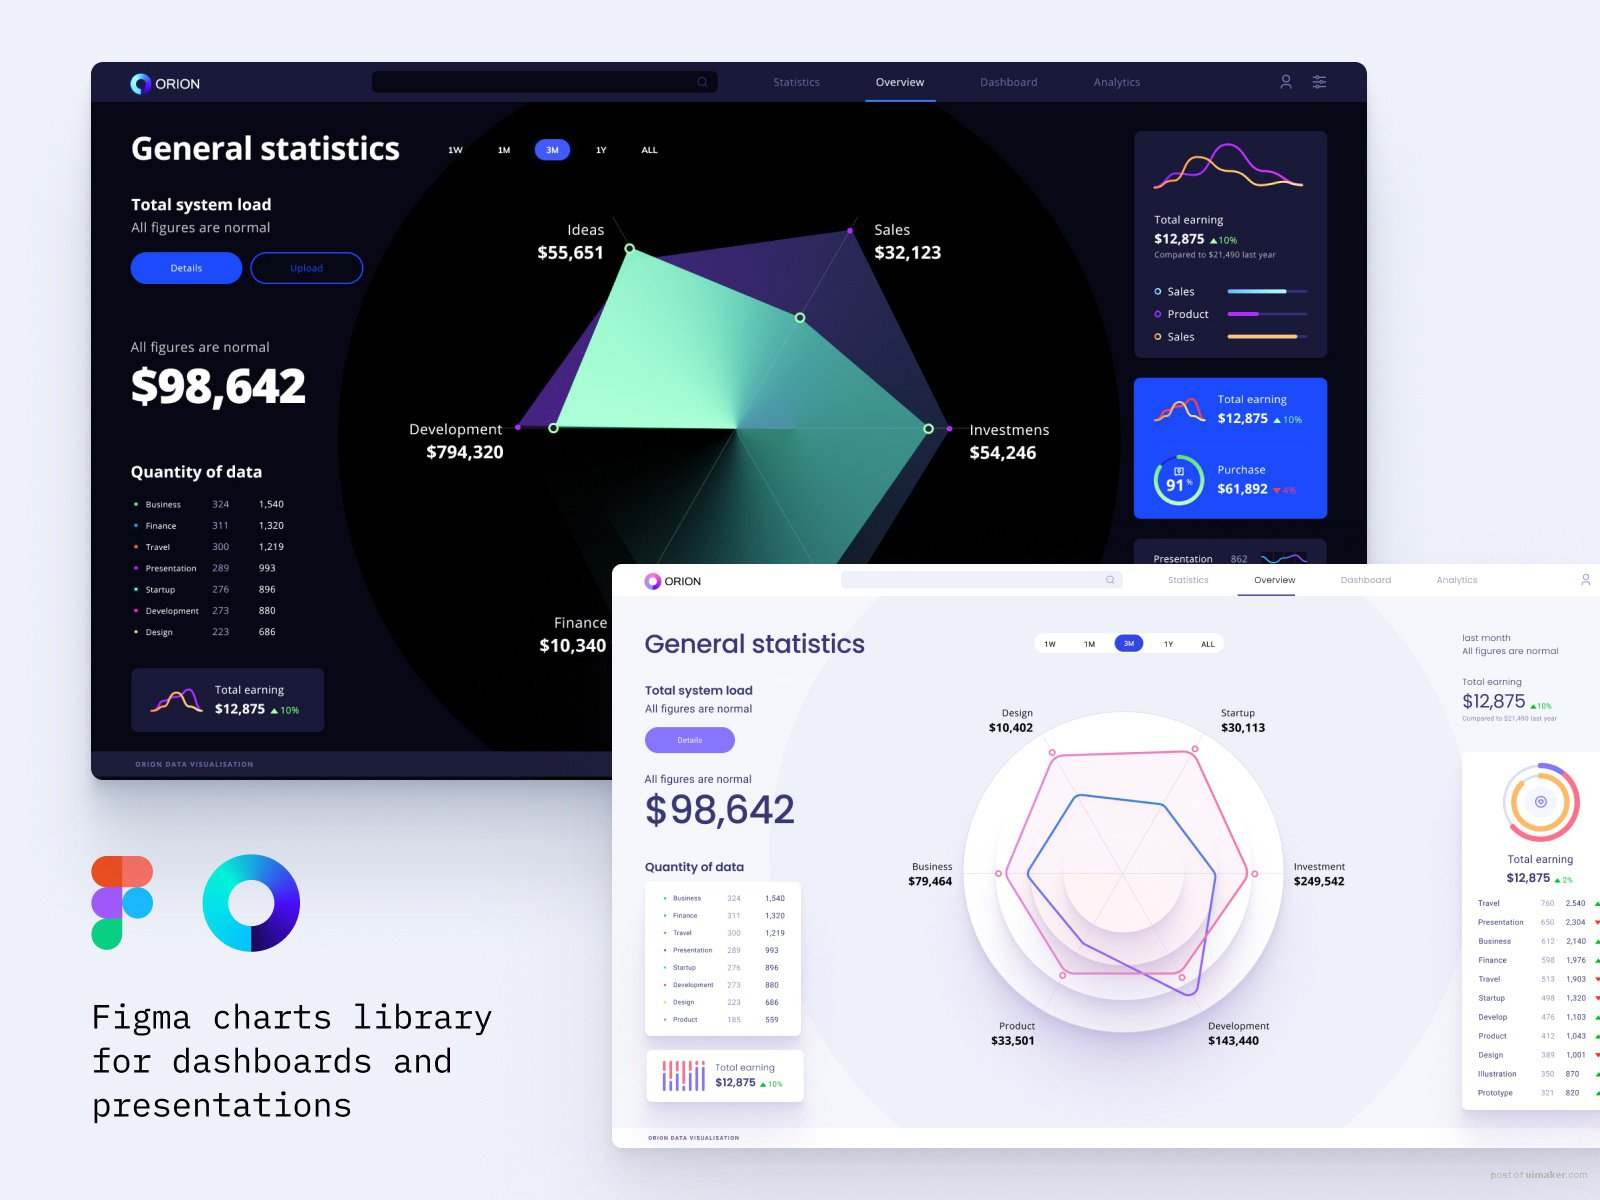 Figma components for dashboards and presentations